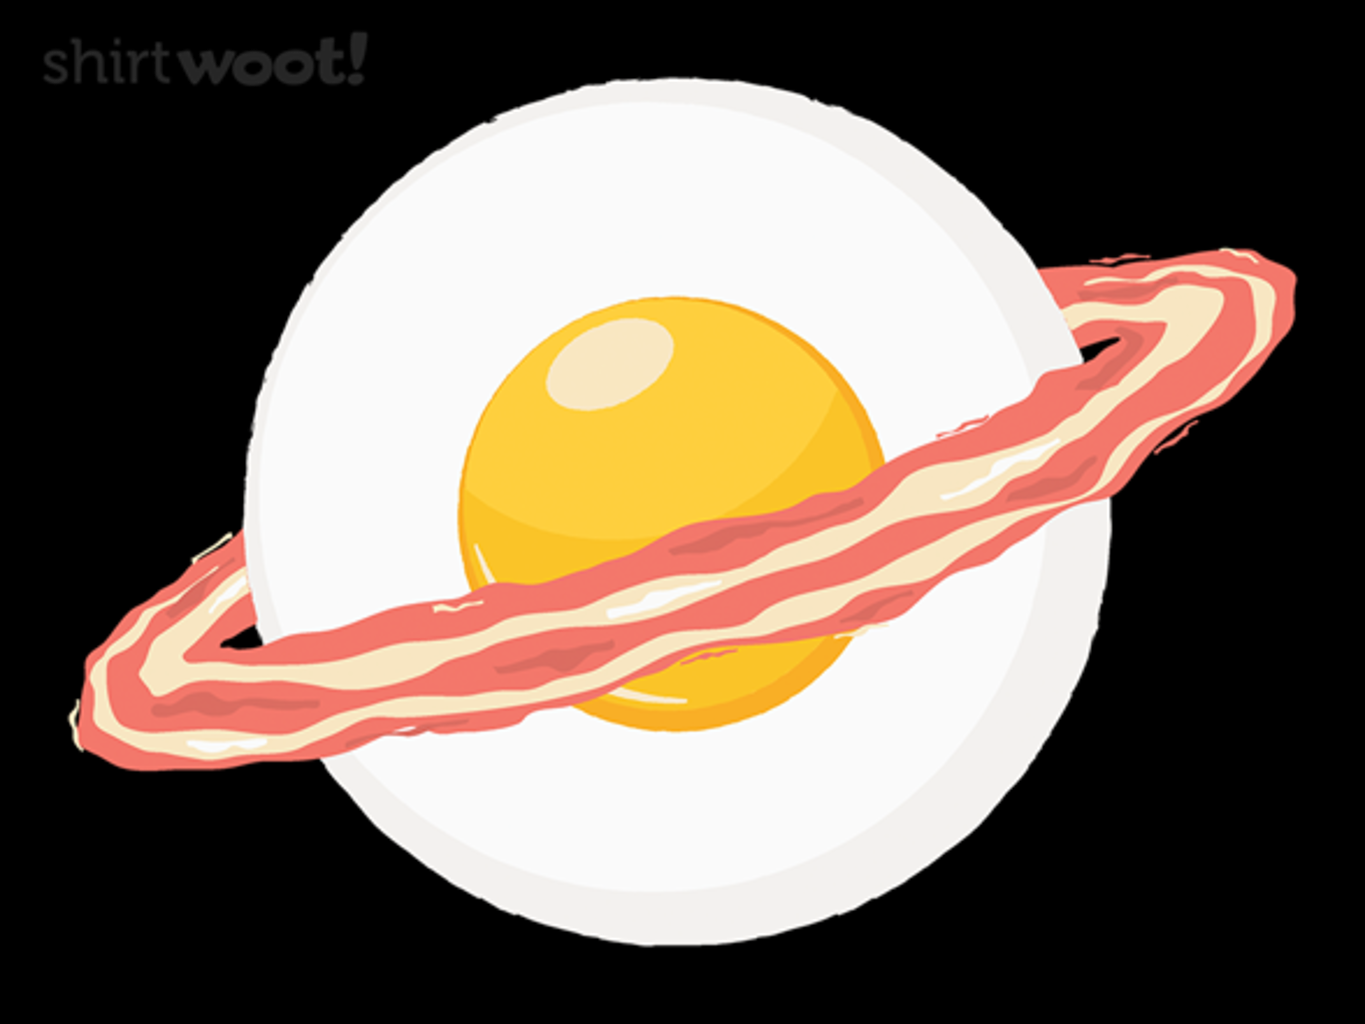 Woot!: Outer Space Breakfast